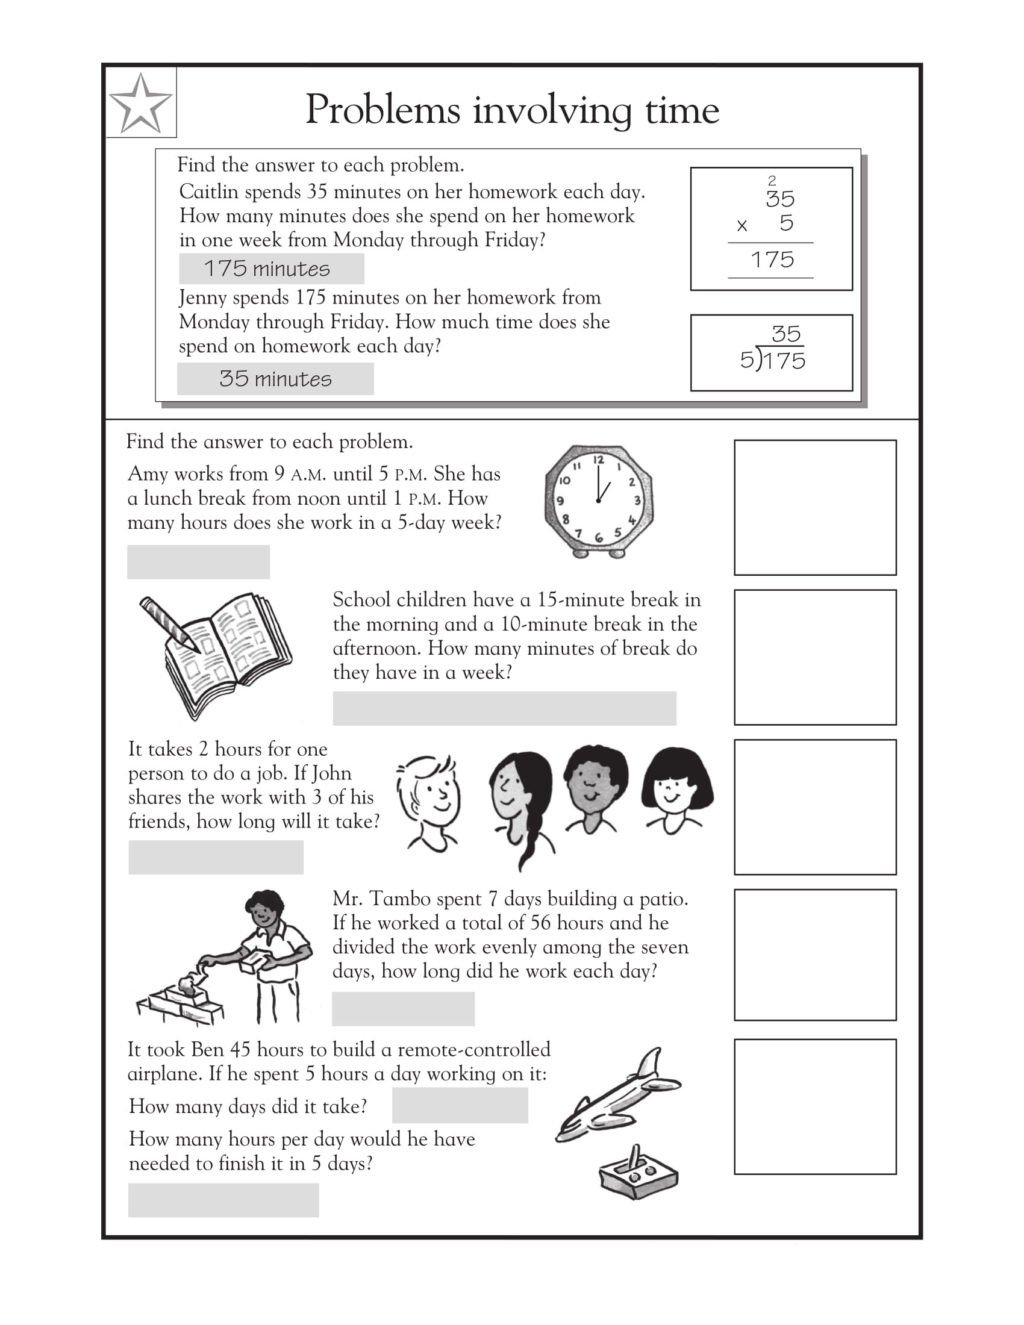 3rde math problems word time sheet hard rounding free online 1024x1325